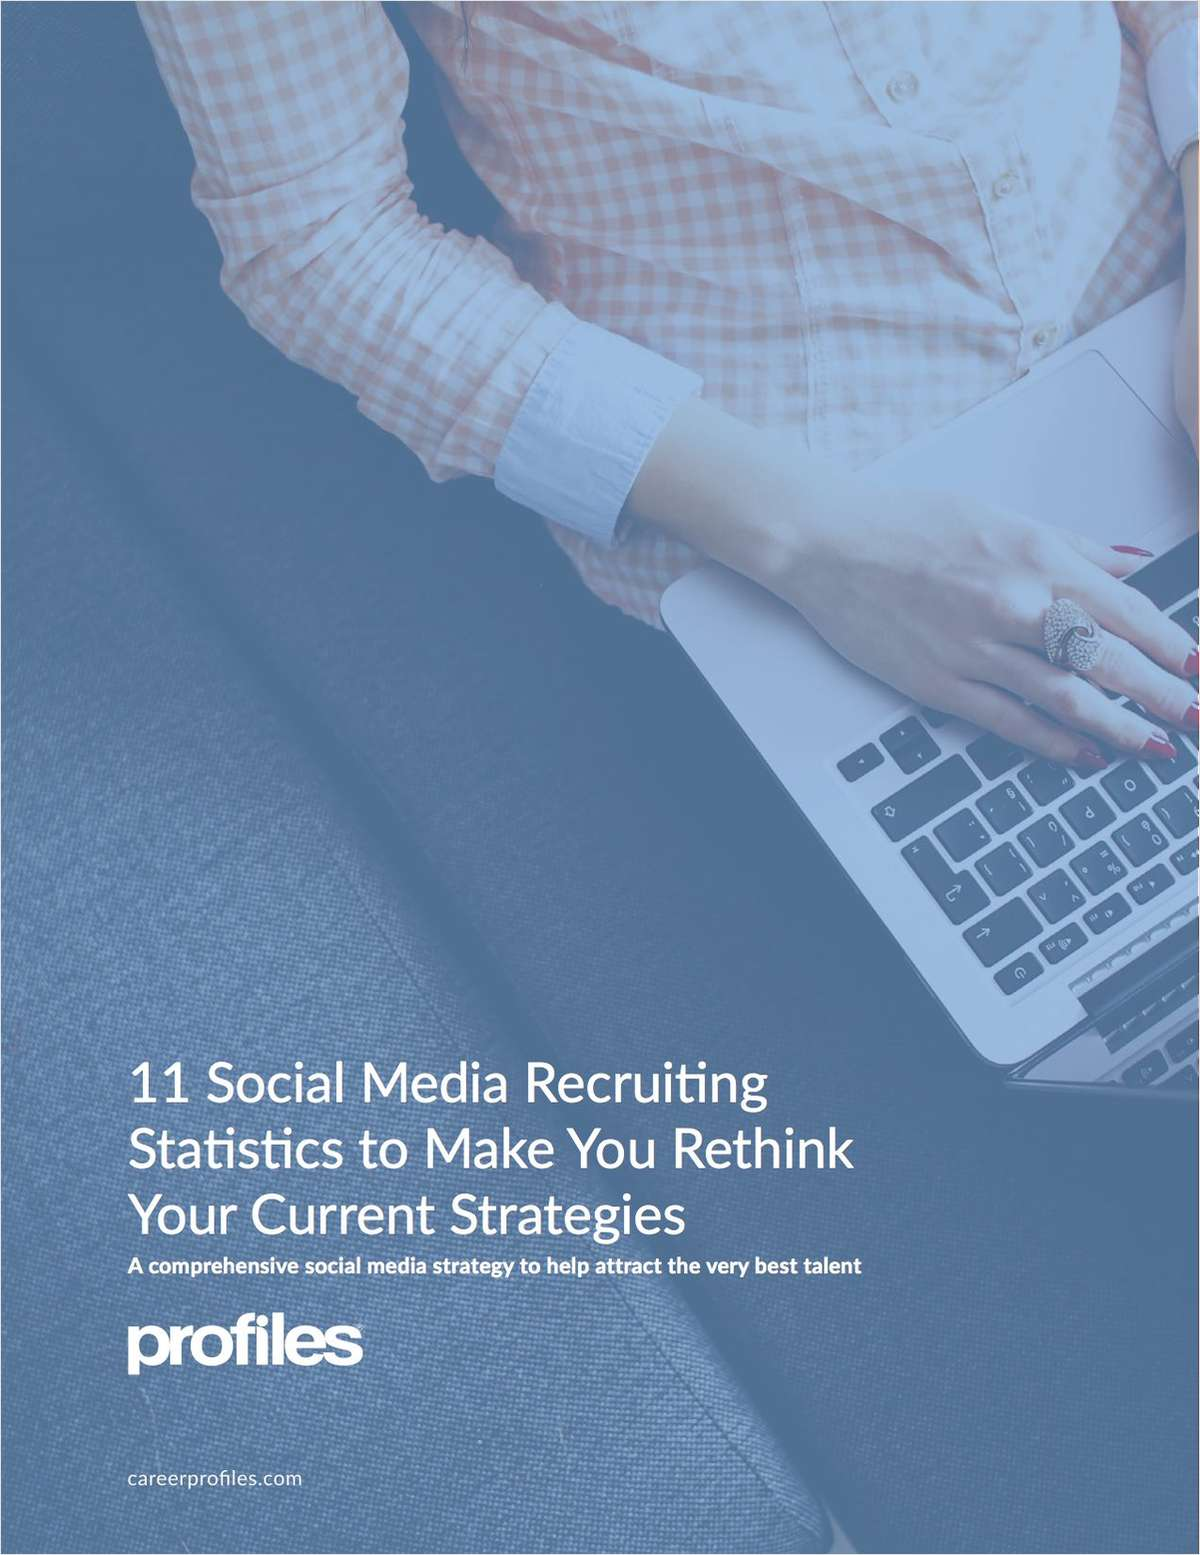 11 Social Media Recruiting Statistics to Make You Rethink Your Current Strategies